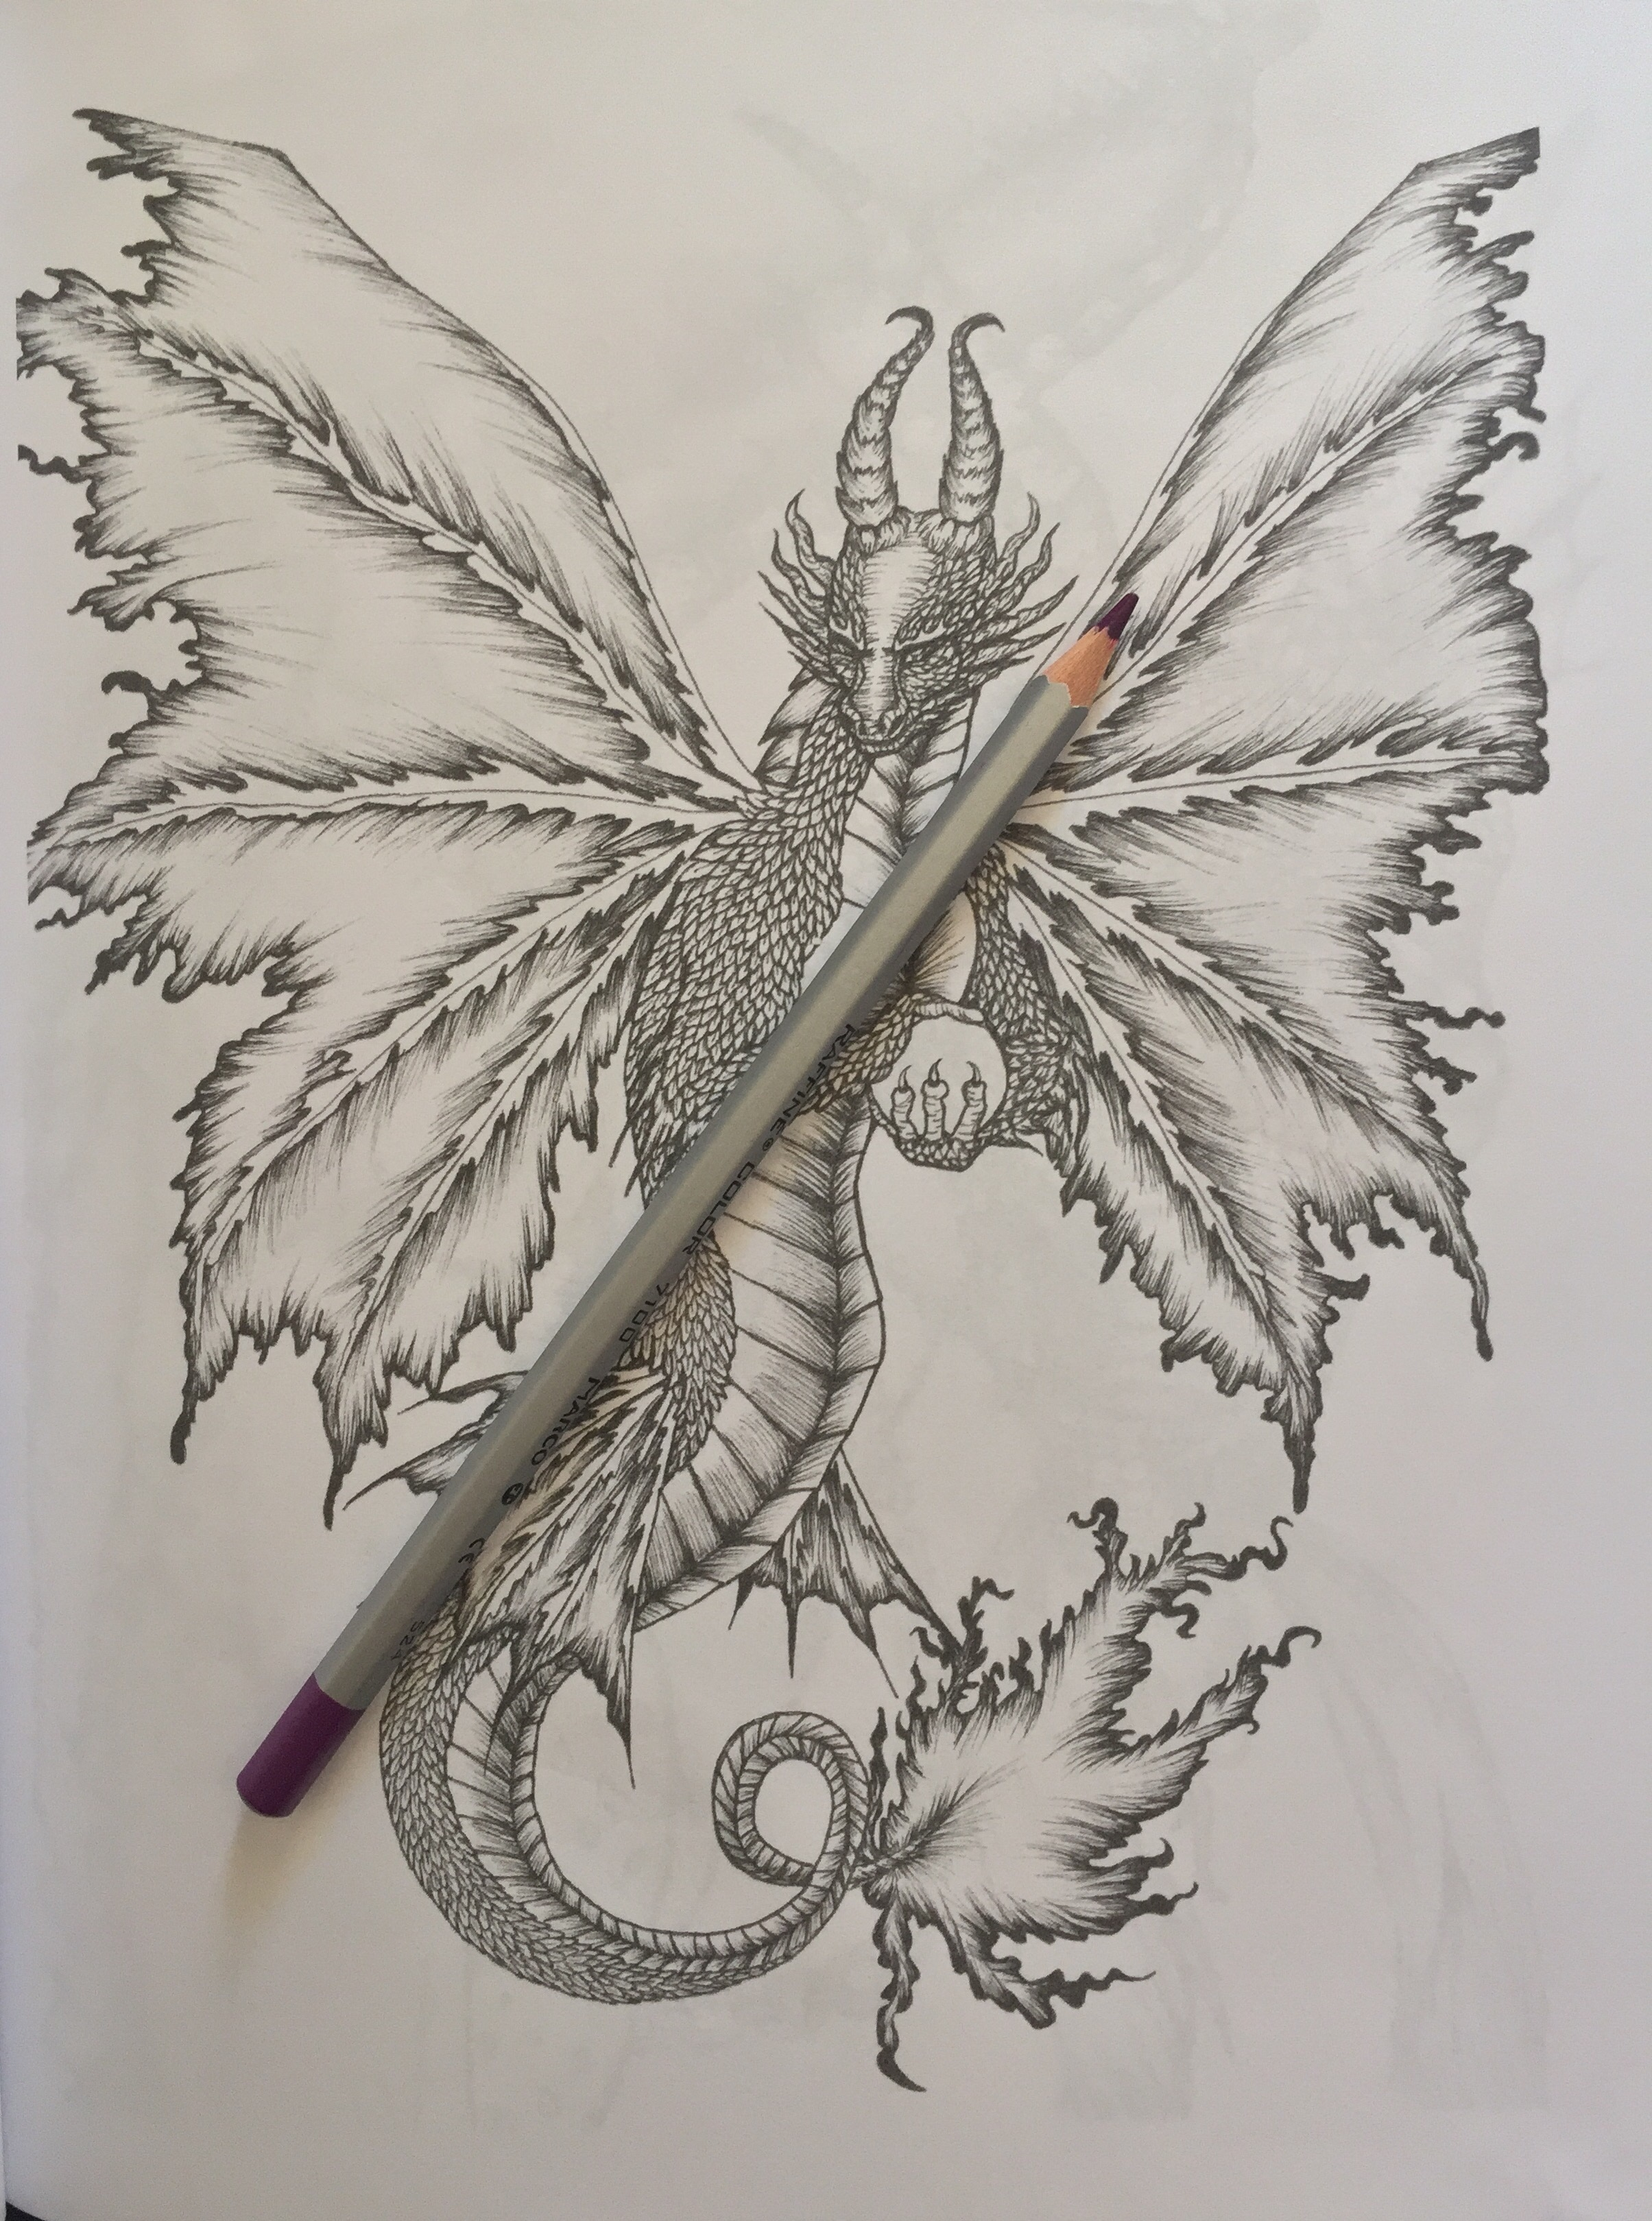 Colouring pencils for adults reviews - Fantasy Coloring Adult Pages Colour Pencils Colouring Color Relaxing Art Therapy Adult Color Mythology Colouring Reviews